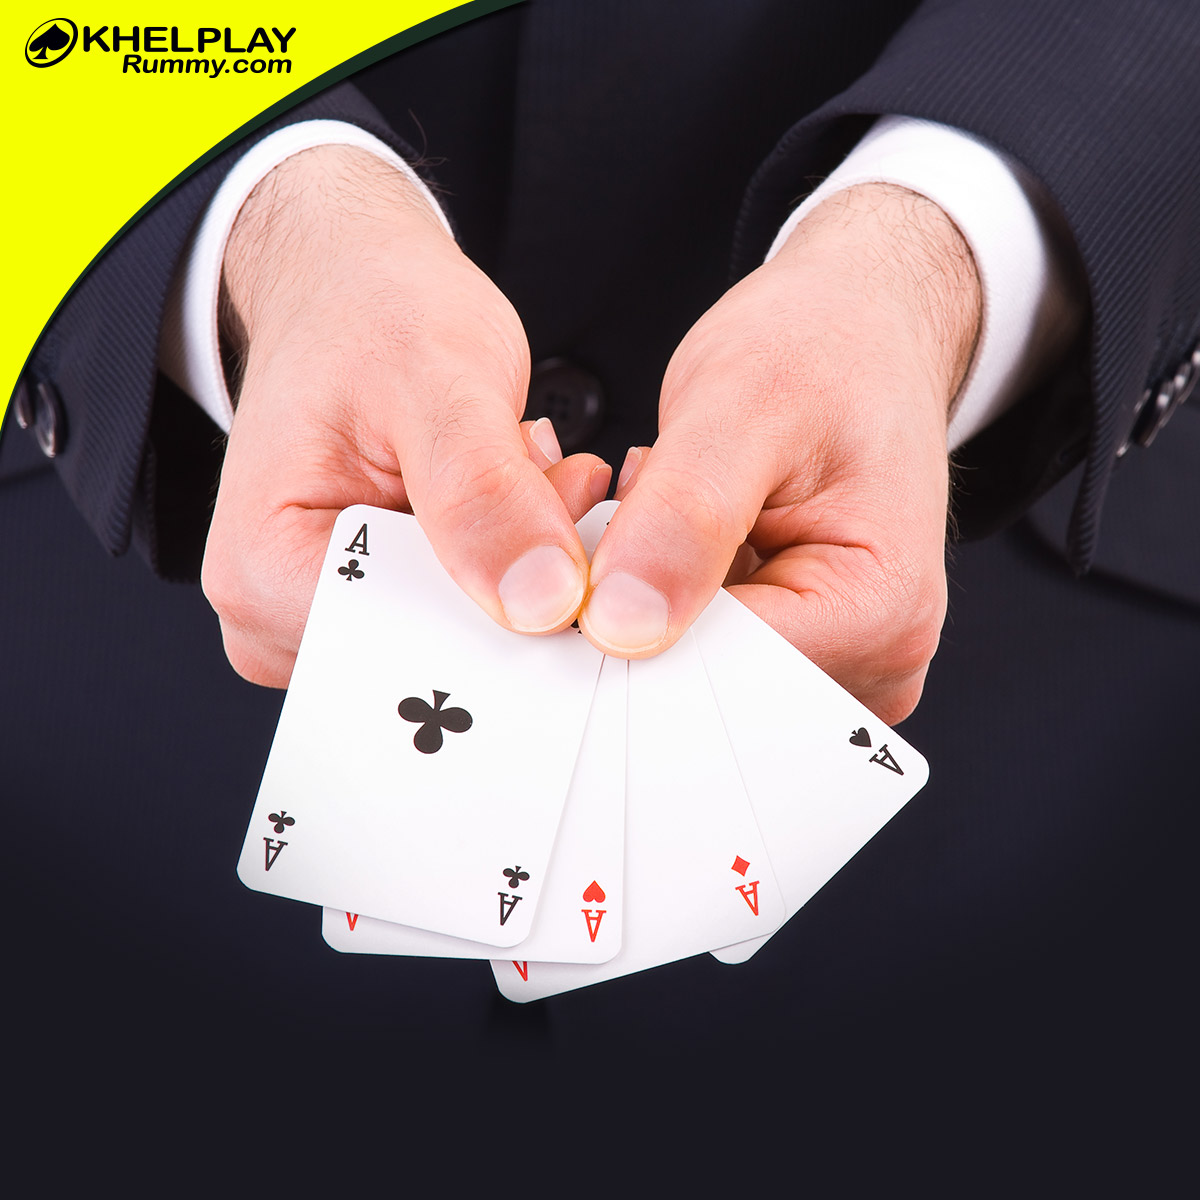 Khelplay Rummy and Its Amazing Prizes for Card Games